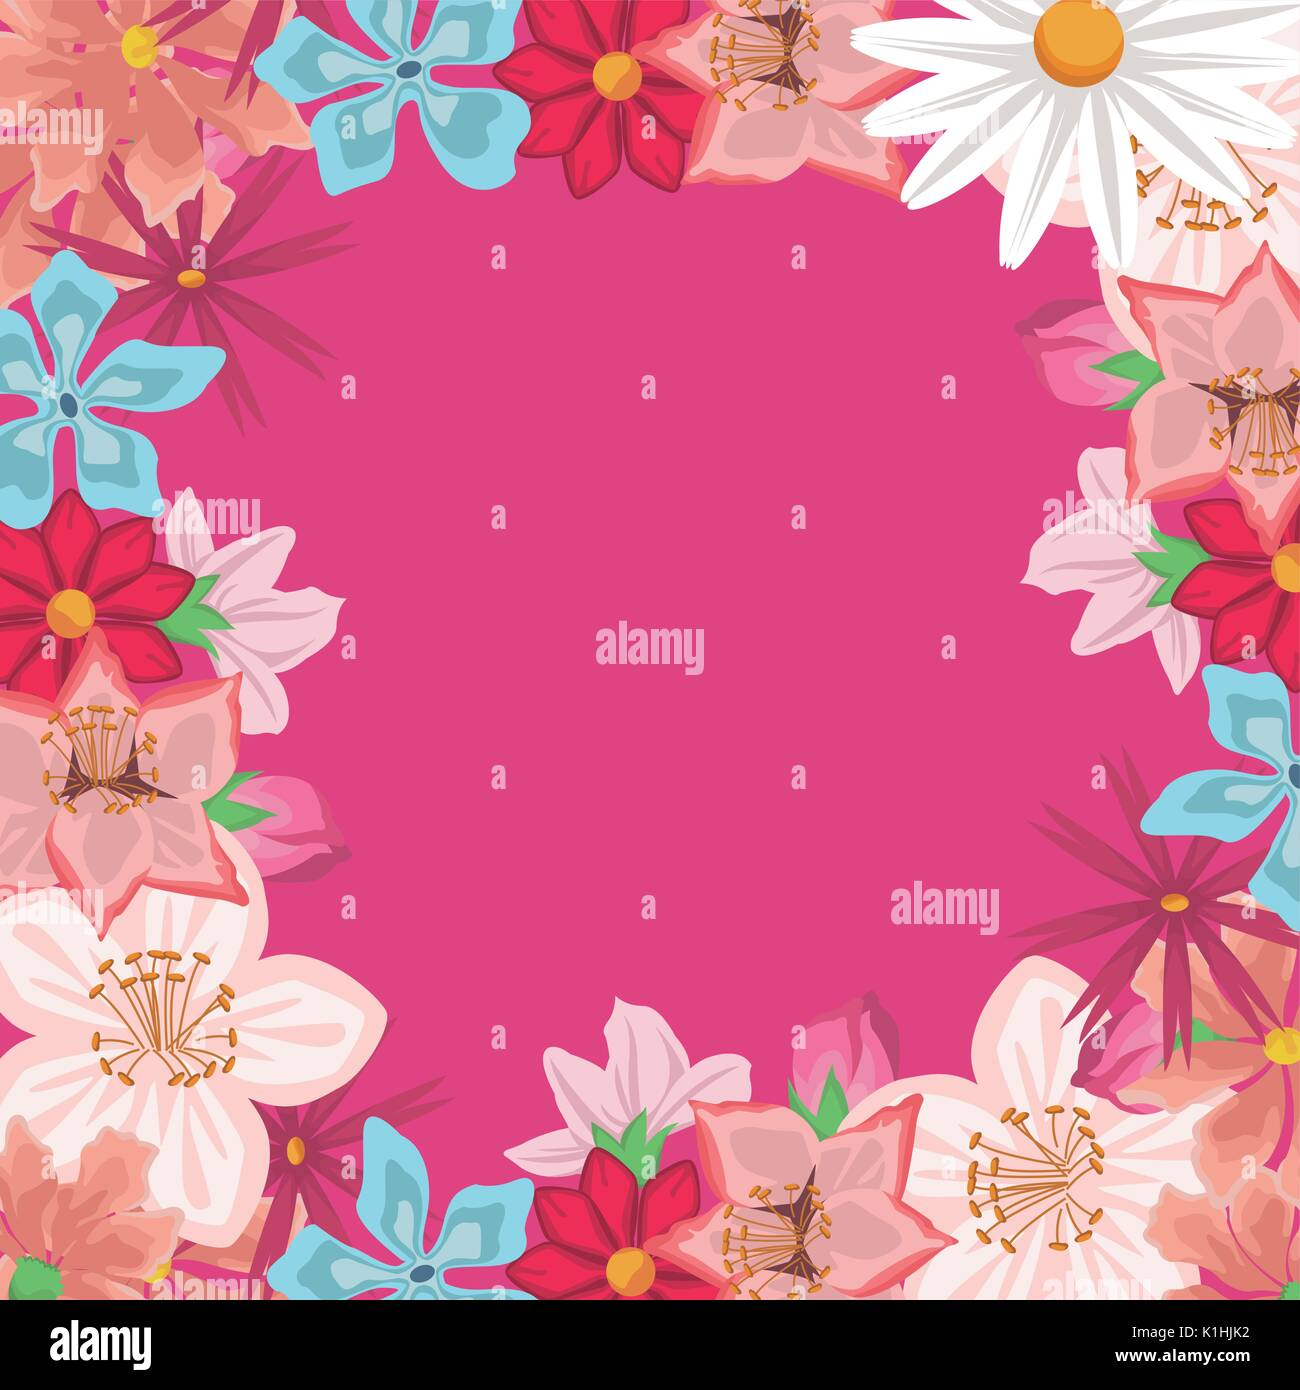 Decorative Black Flower Border Stock Image: Delicate Border Stock Photos & Delicate Border Stock